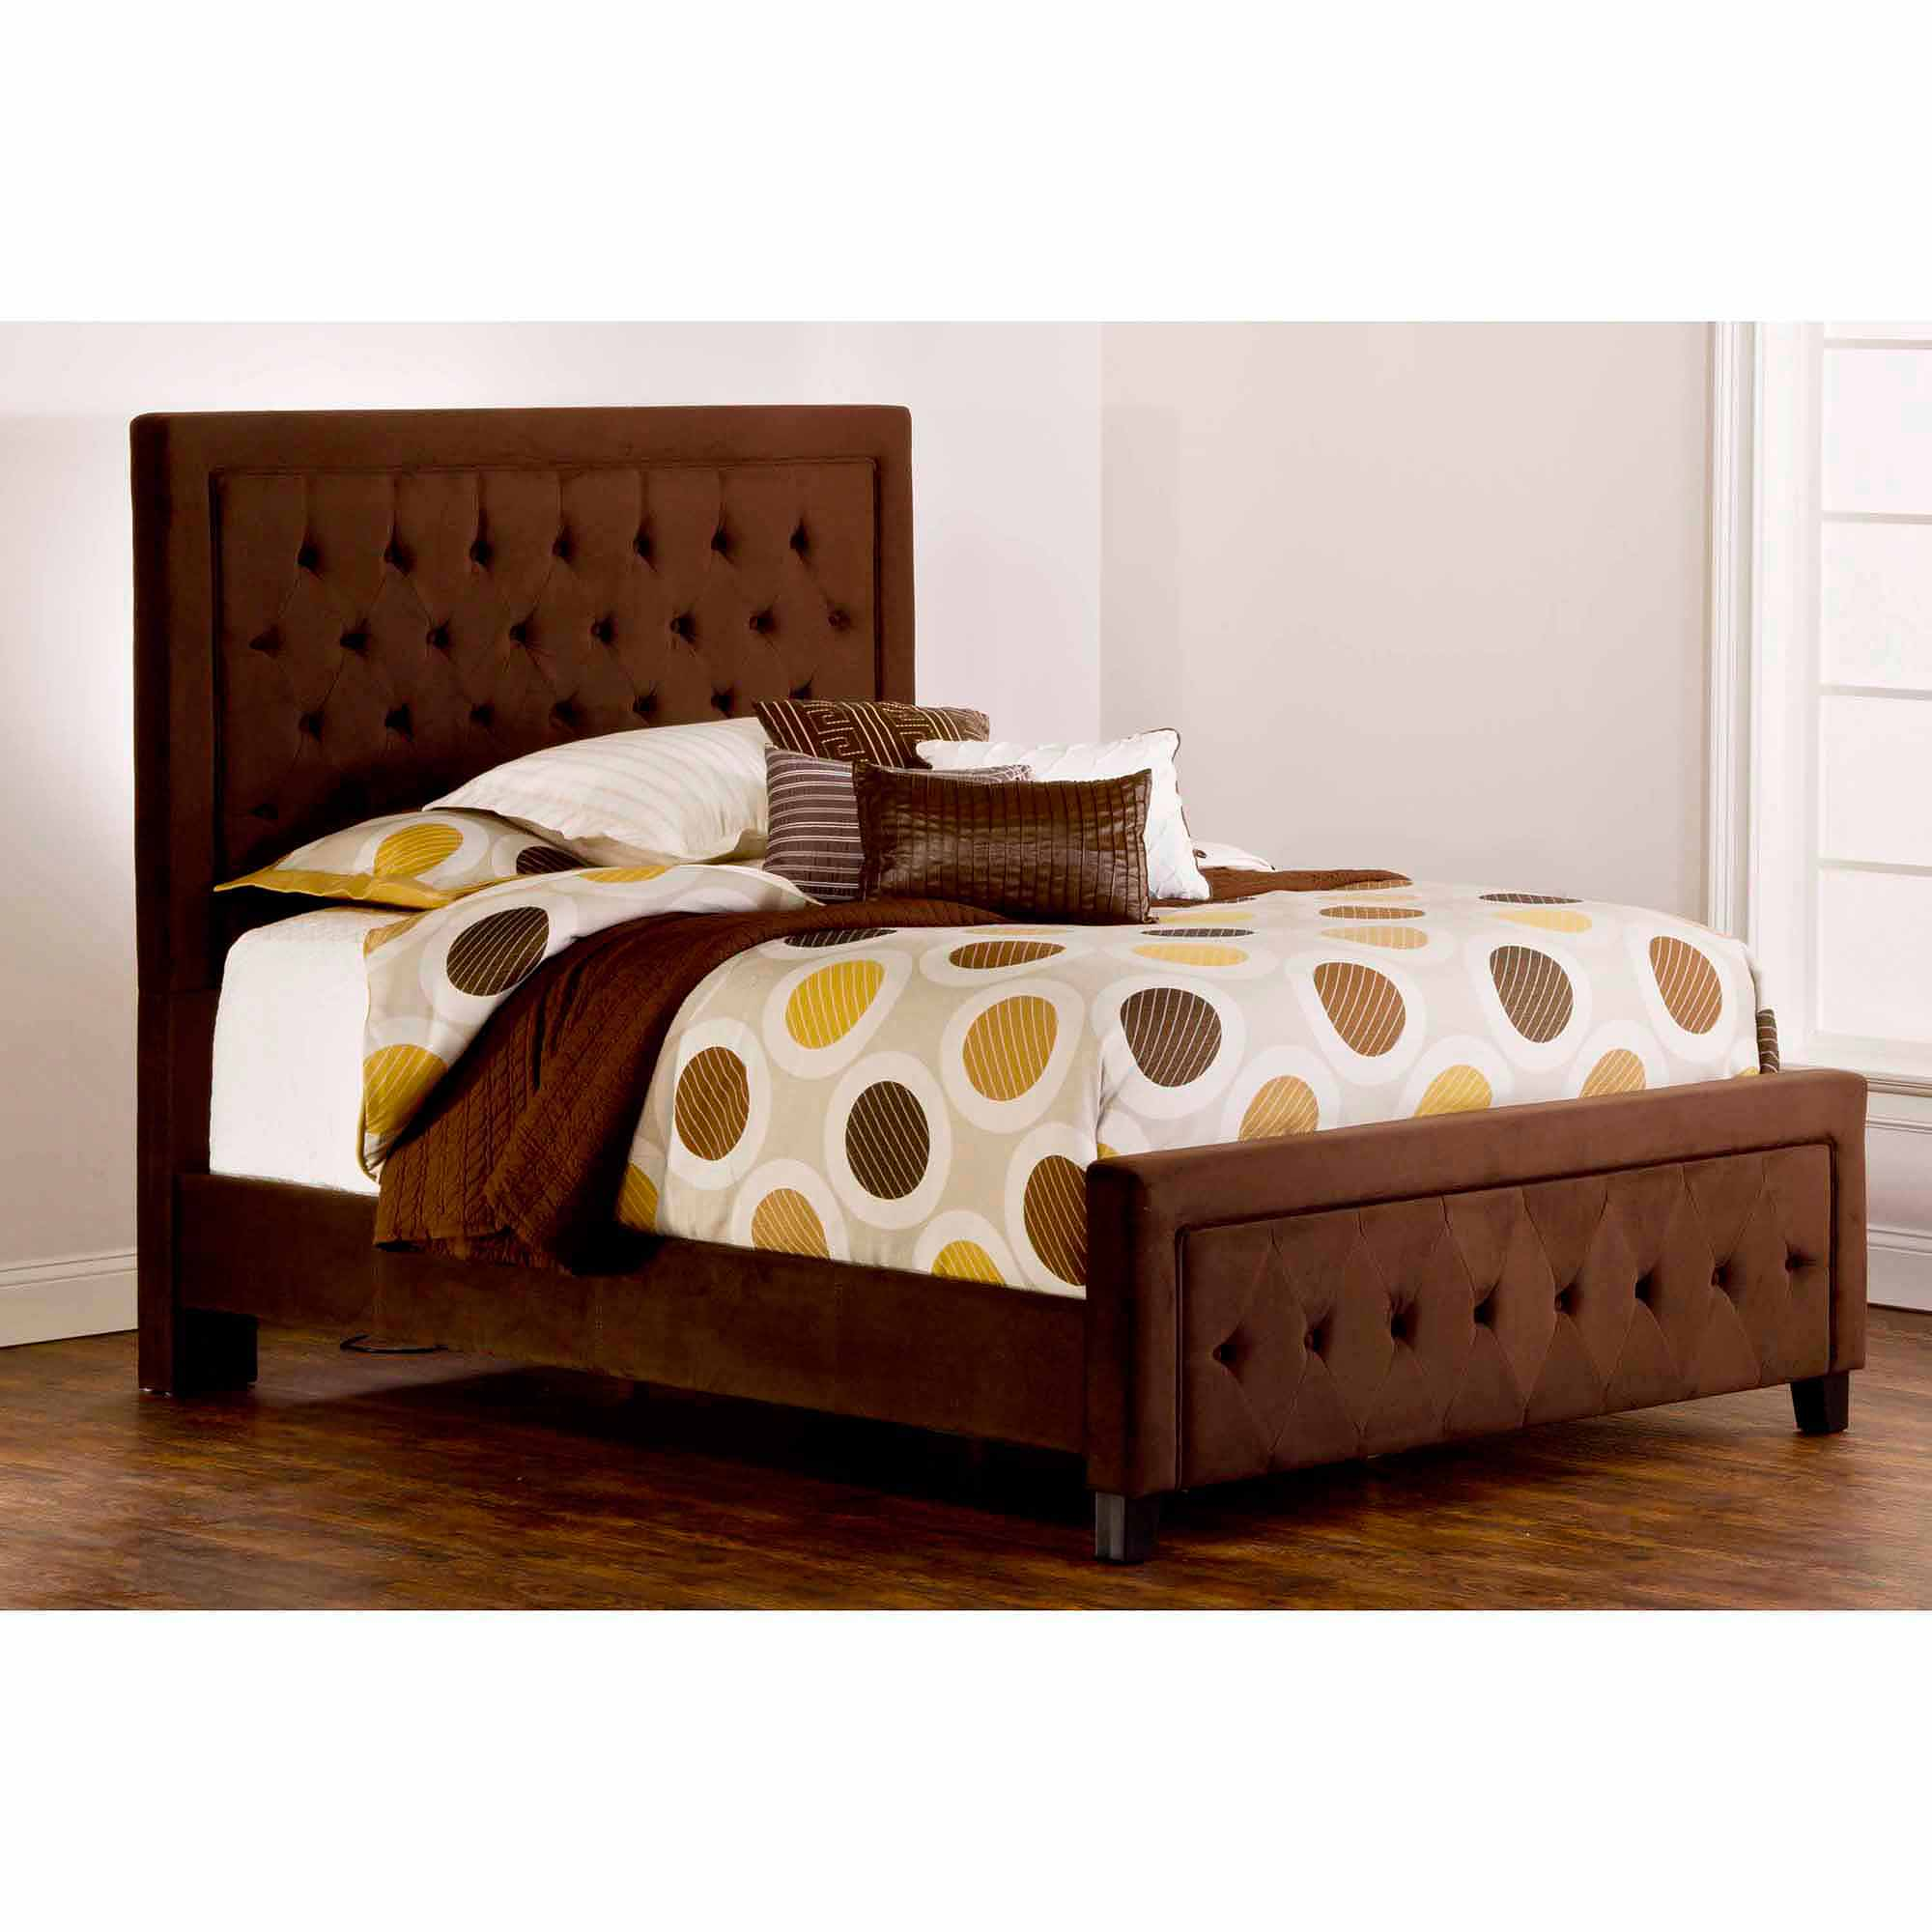 Hillsdale Furniture Kaylie Headboard, Queen, Chocolate